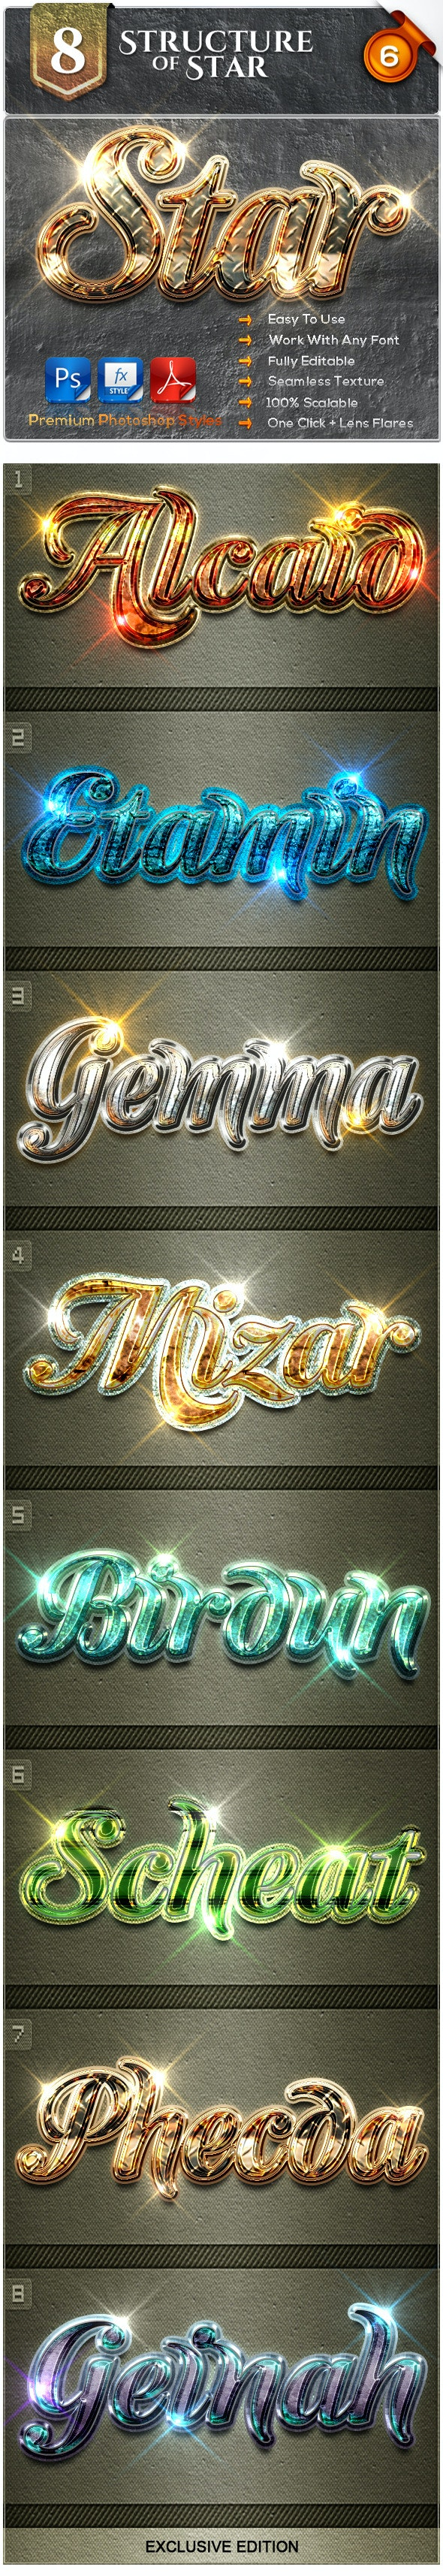 8 Structure of Stars #6 - Text Effects Styles